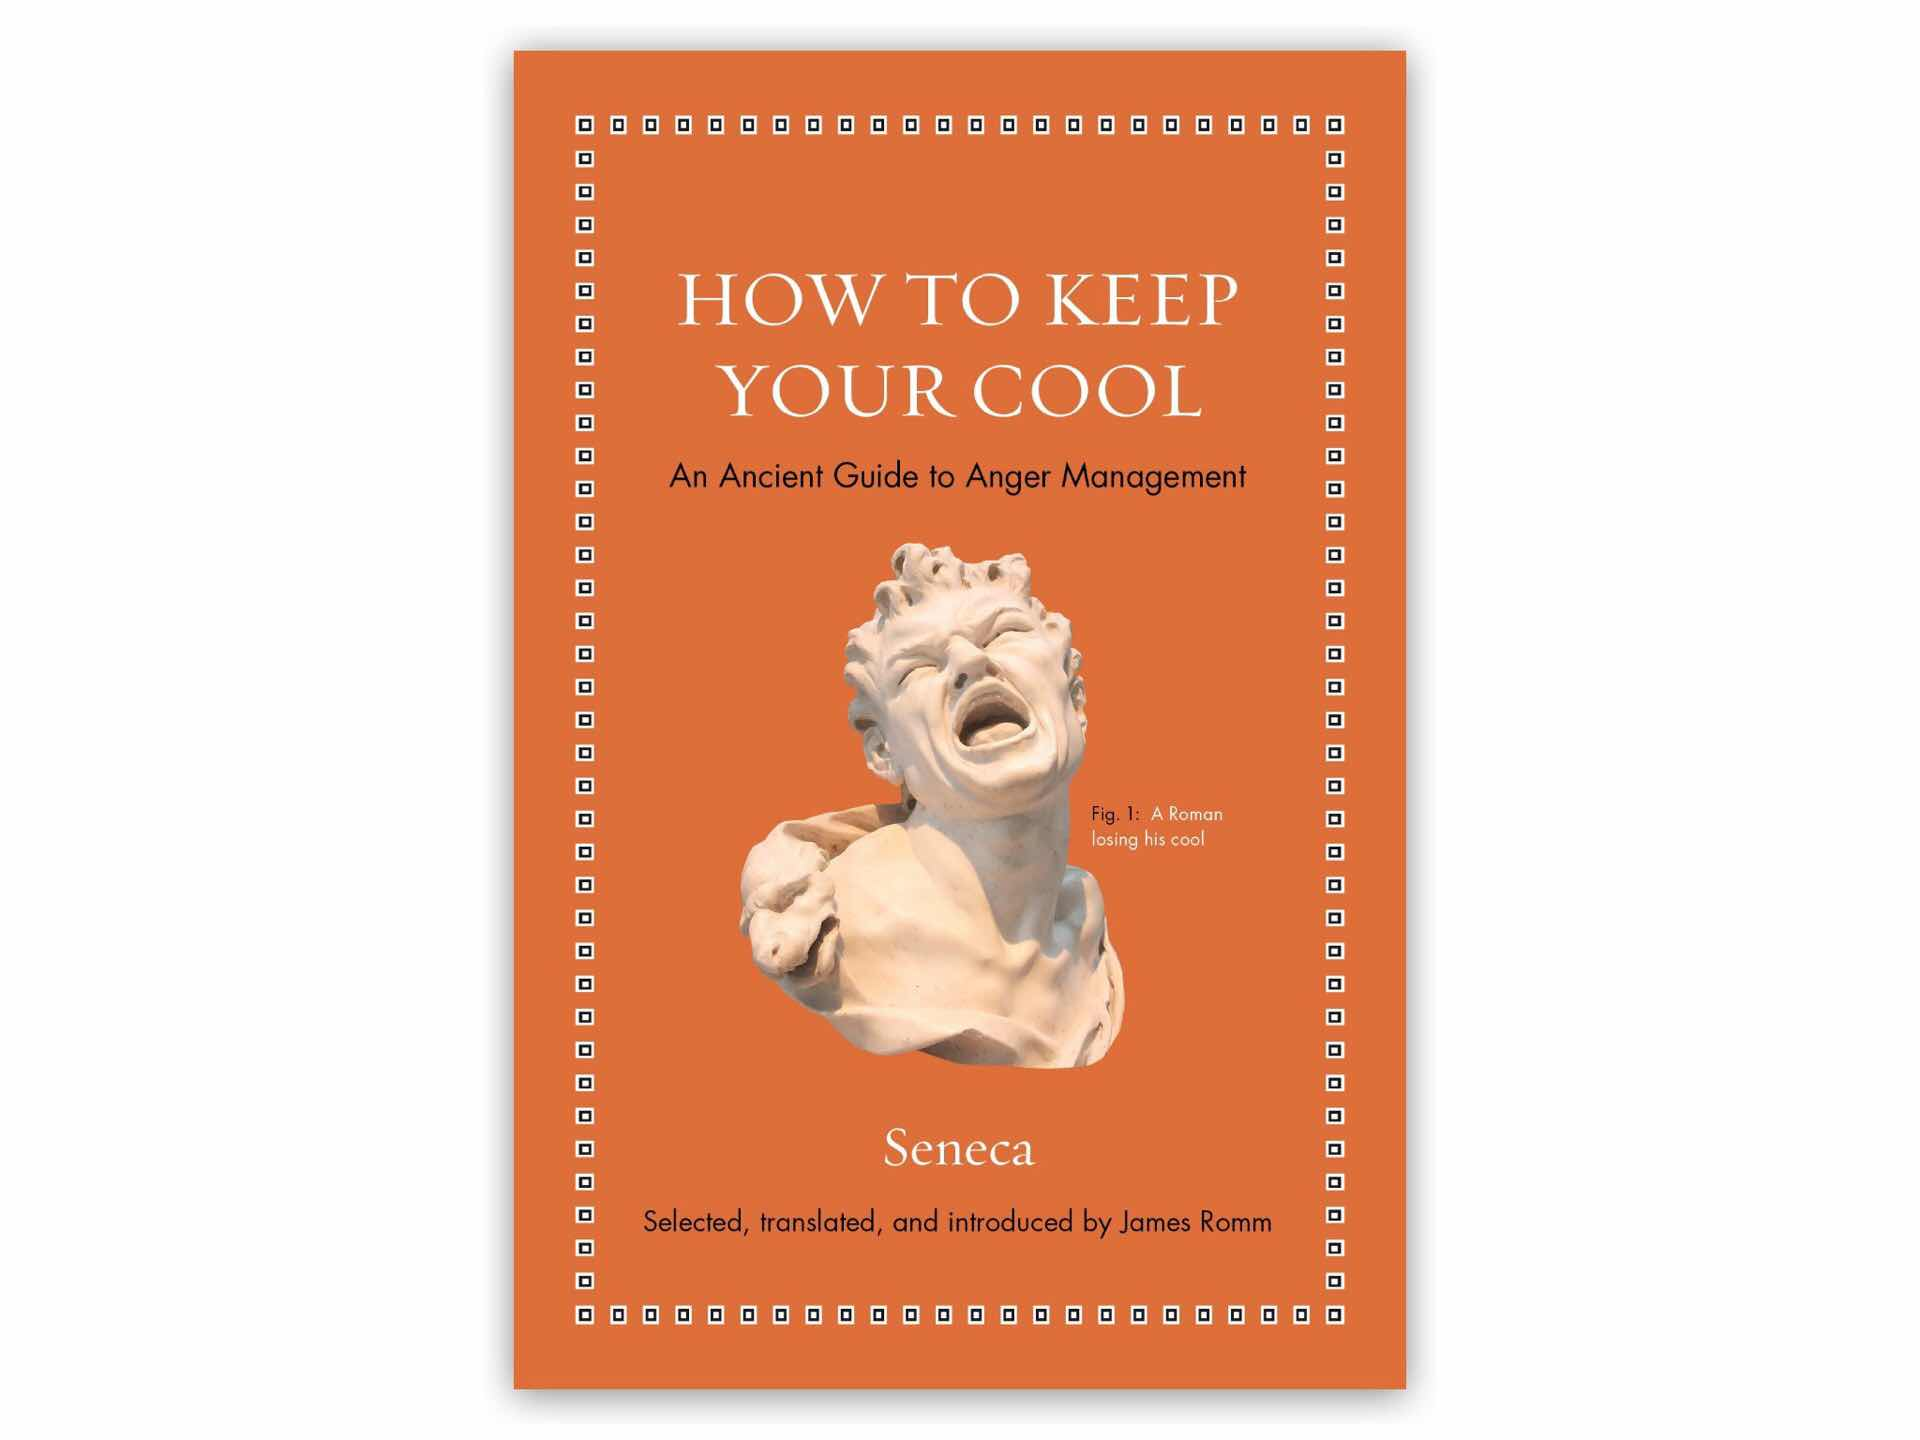 how-to-keep-your-cool-by-seneca-and-james-s-romm